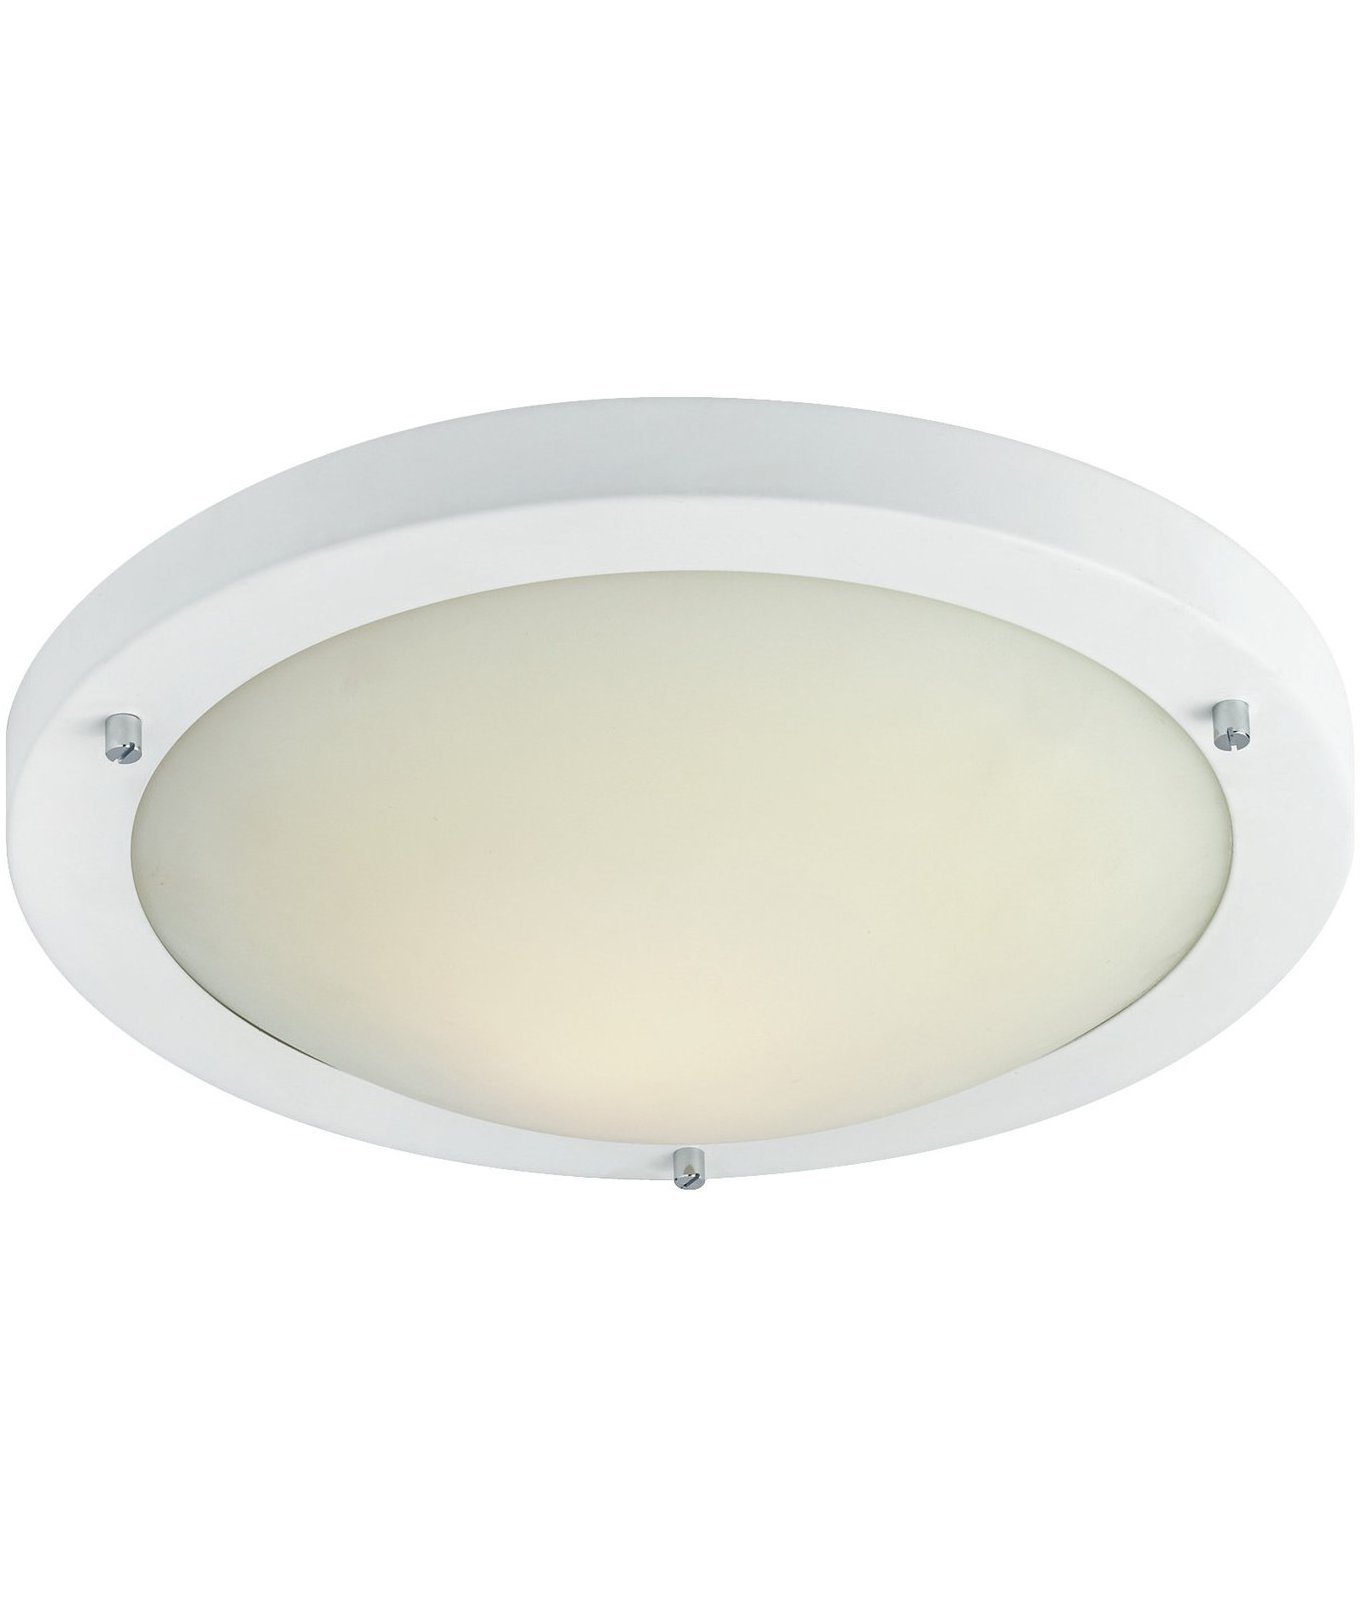 Simple Flush Fitting With Choice Of Lamp Types